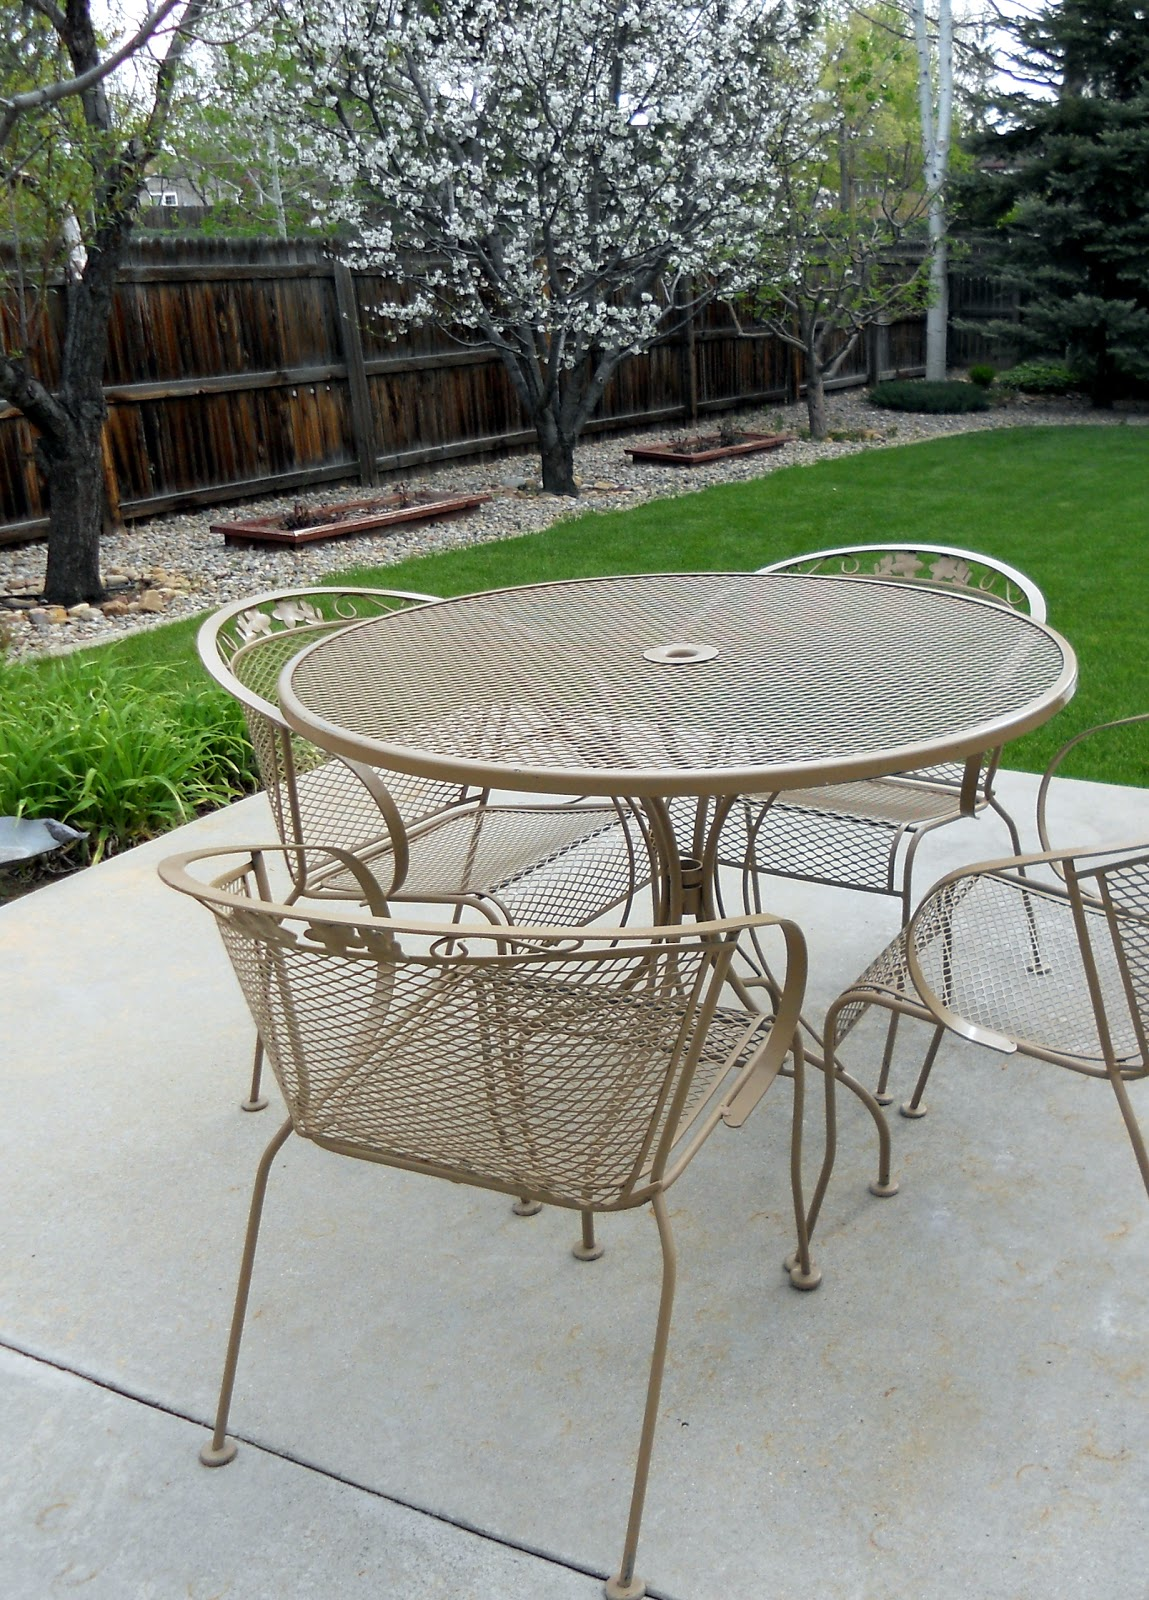 Refurbishing Wrought Iron Furniture. - Just Another Hang Up: Refurbishing Wrought Iron Furniture...